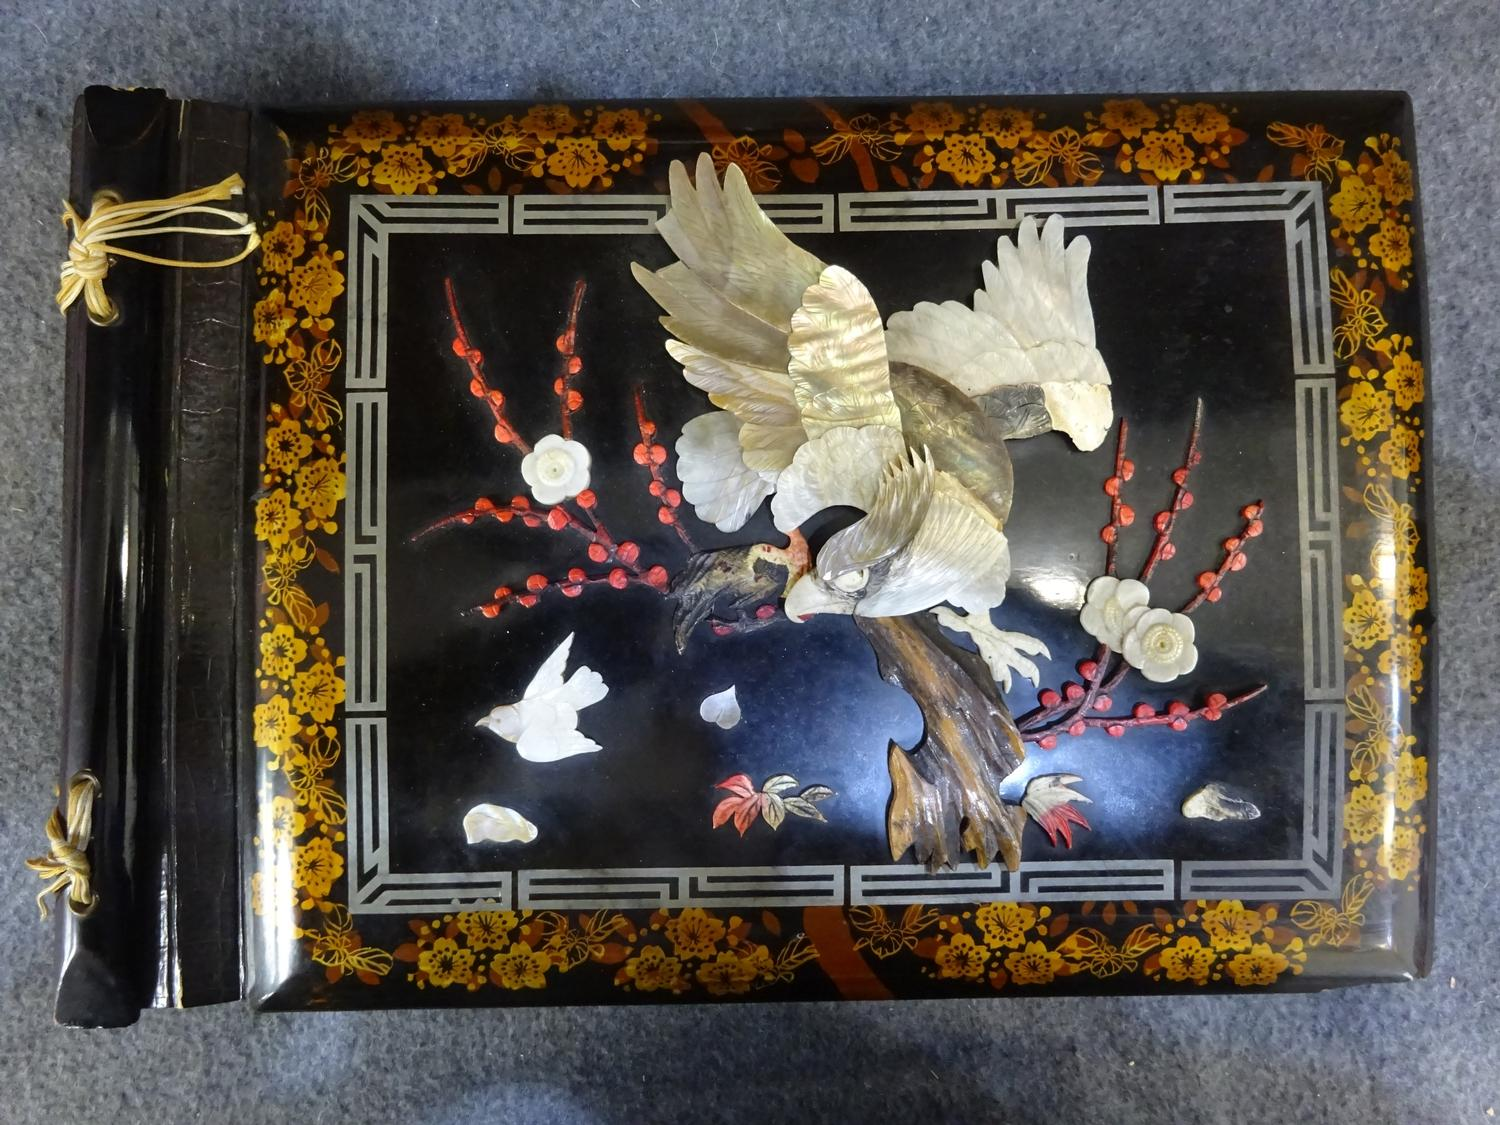 Lot 51 - (V) Paper mache 1940s oriental photo album w/ abalone eagle on cover. Contains military photographs